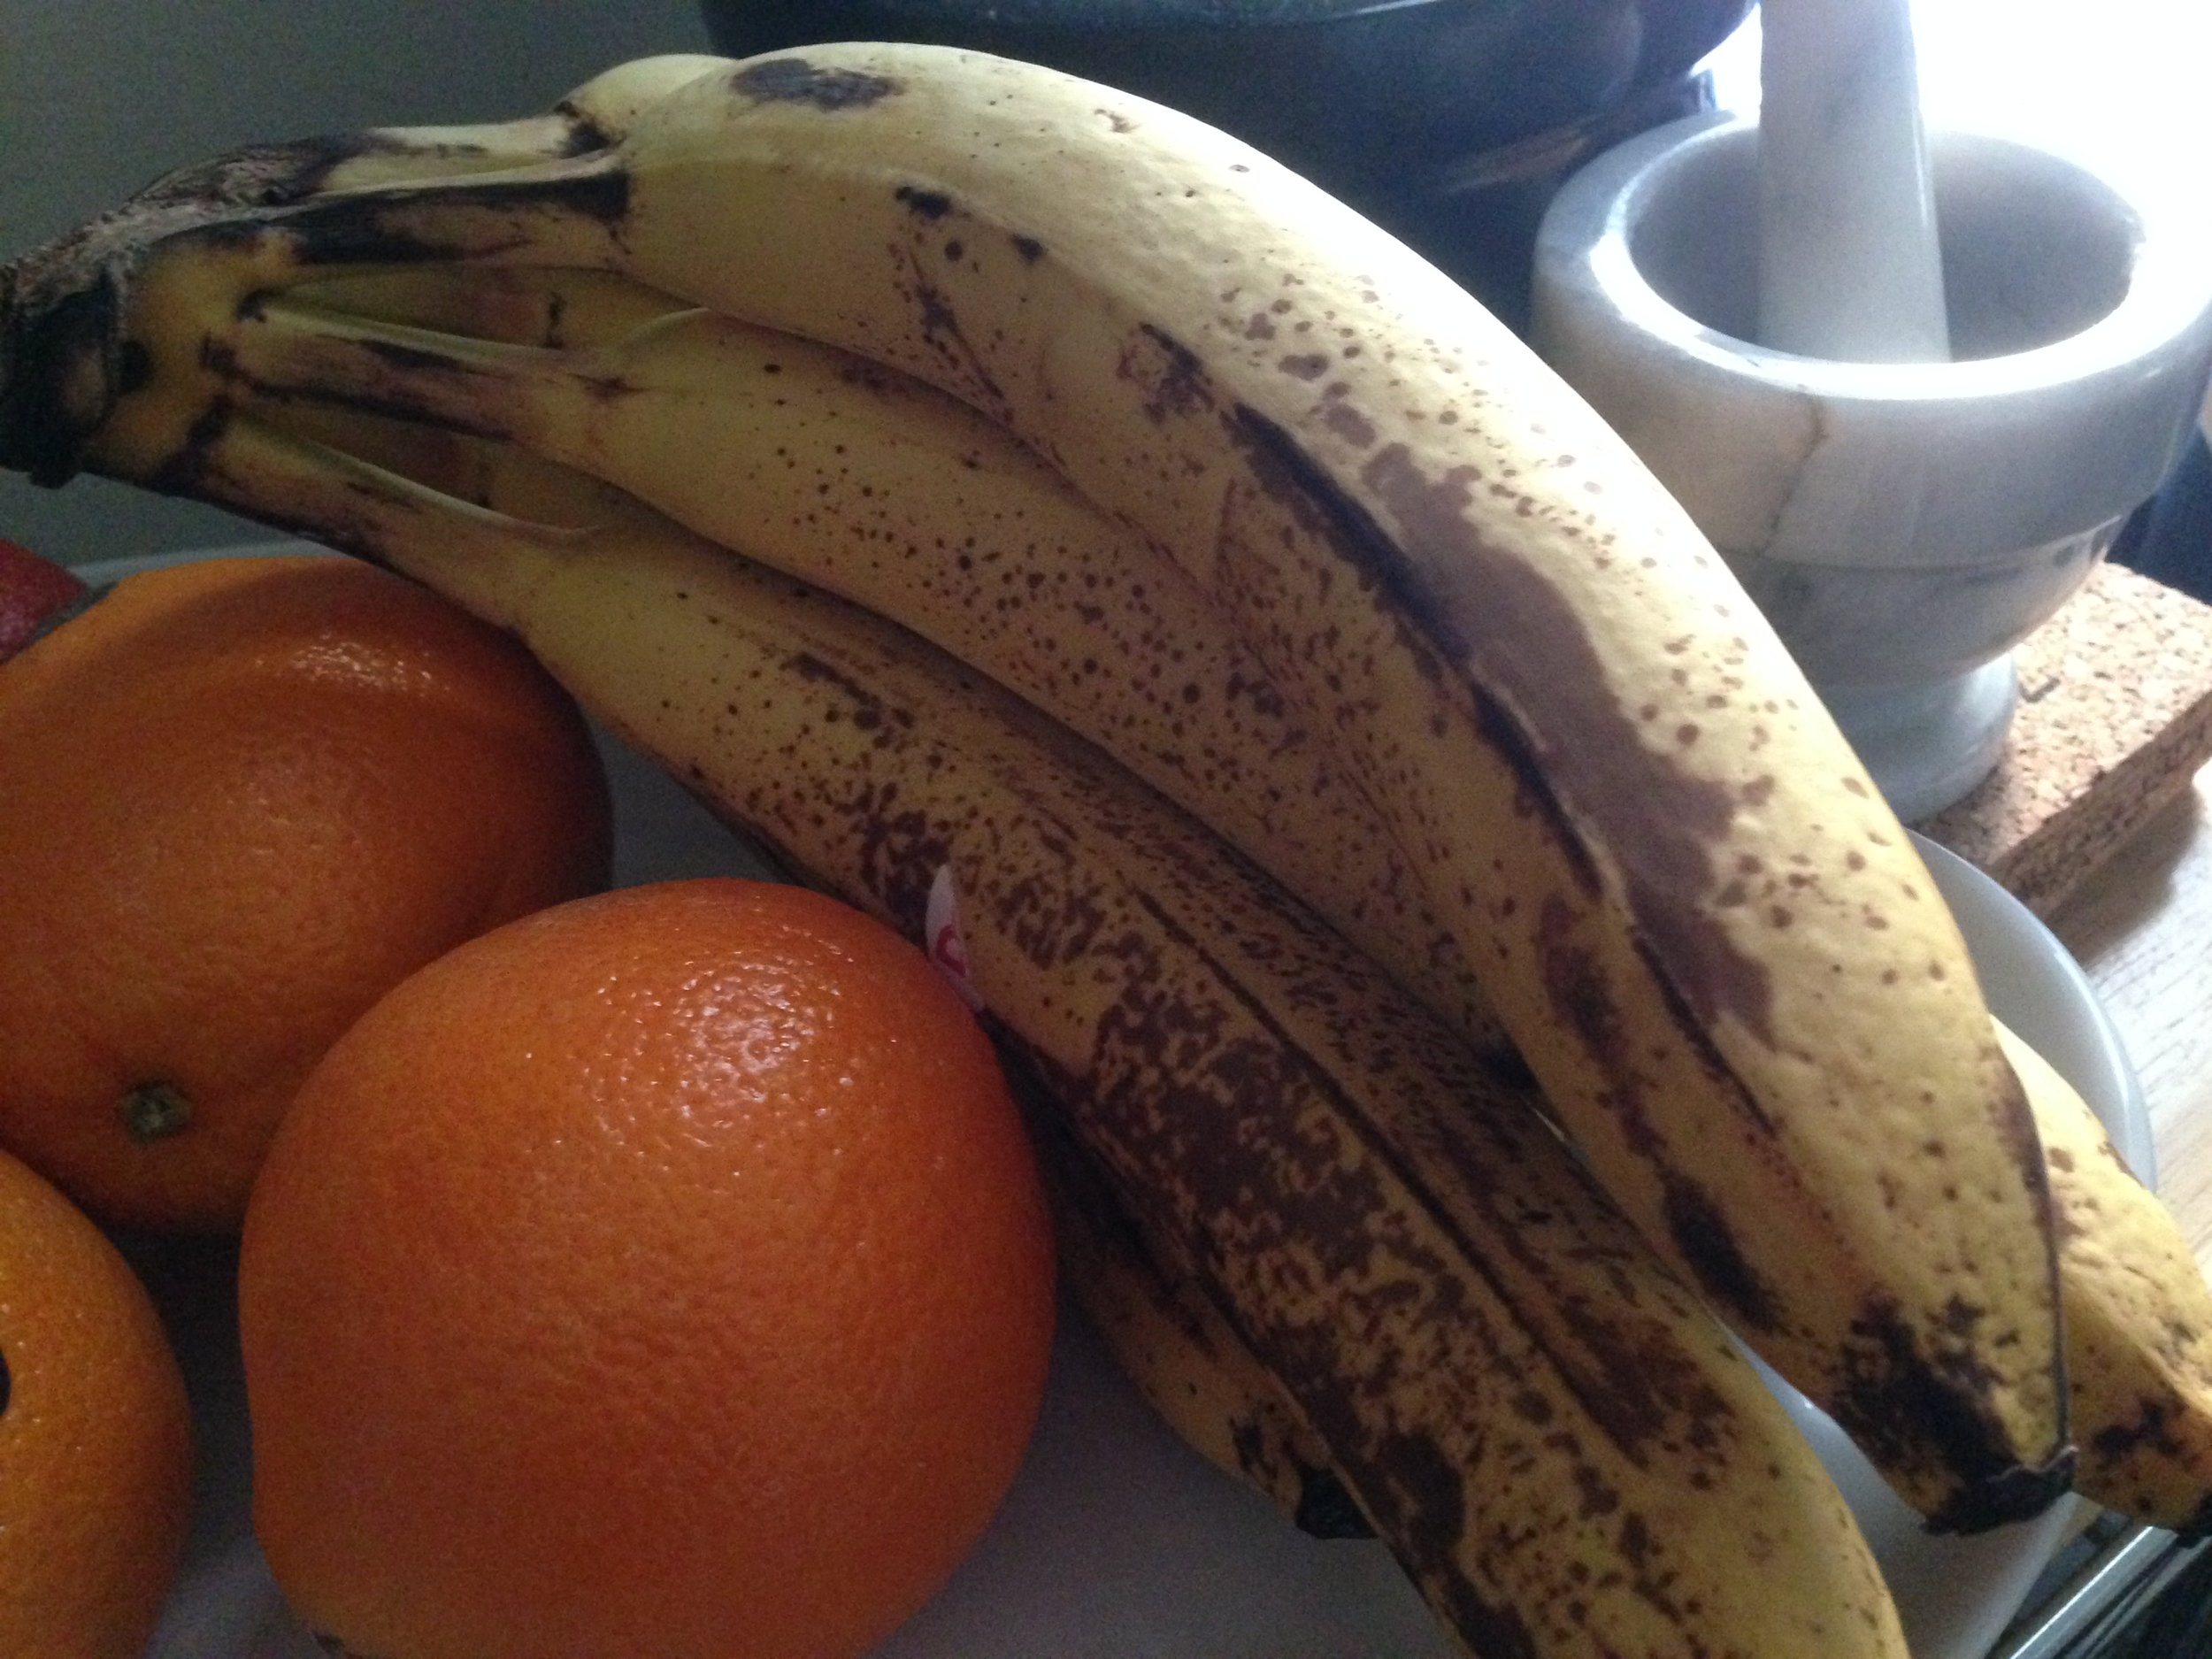 Some of the ripe bananas and the oranges I picked up from the market.